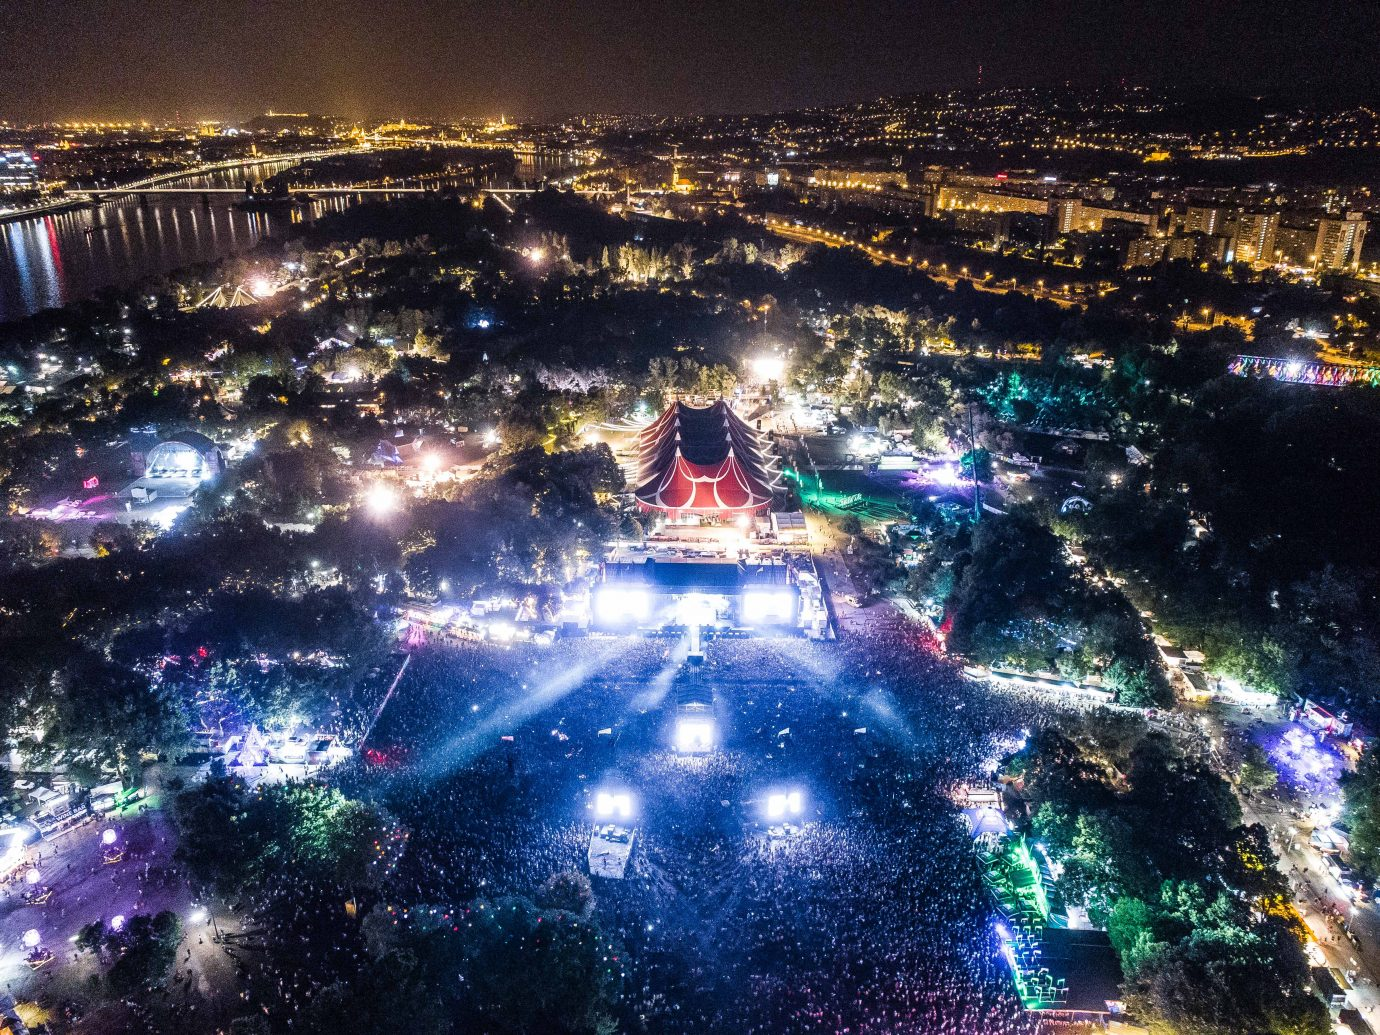 sky view of a lit festival at night